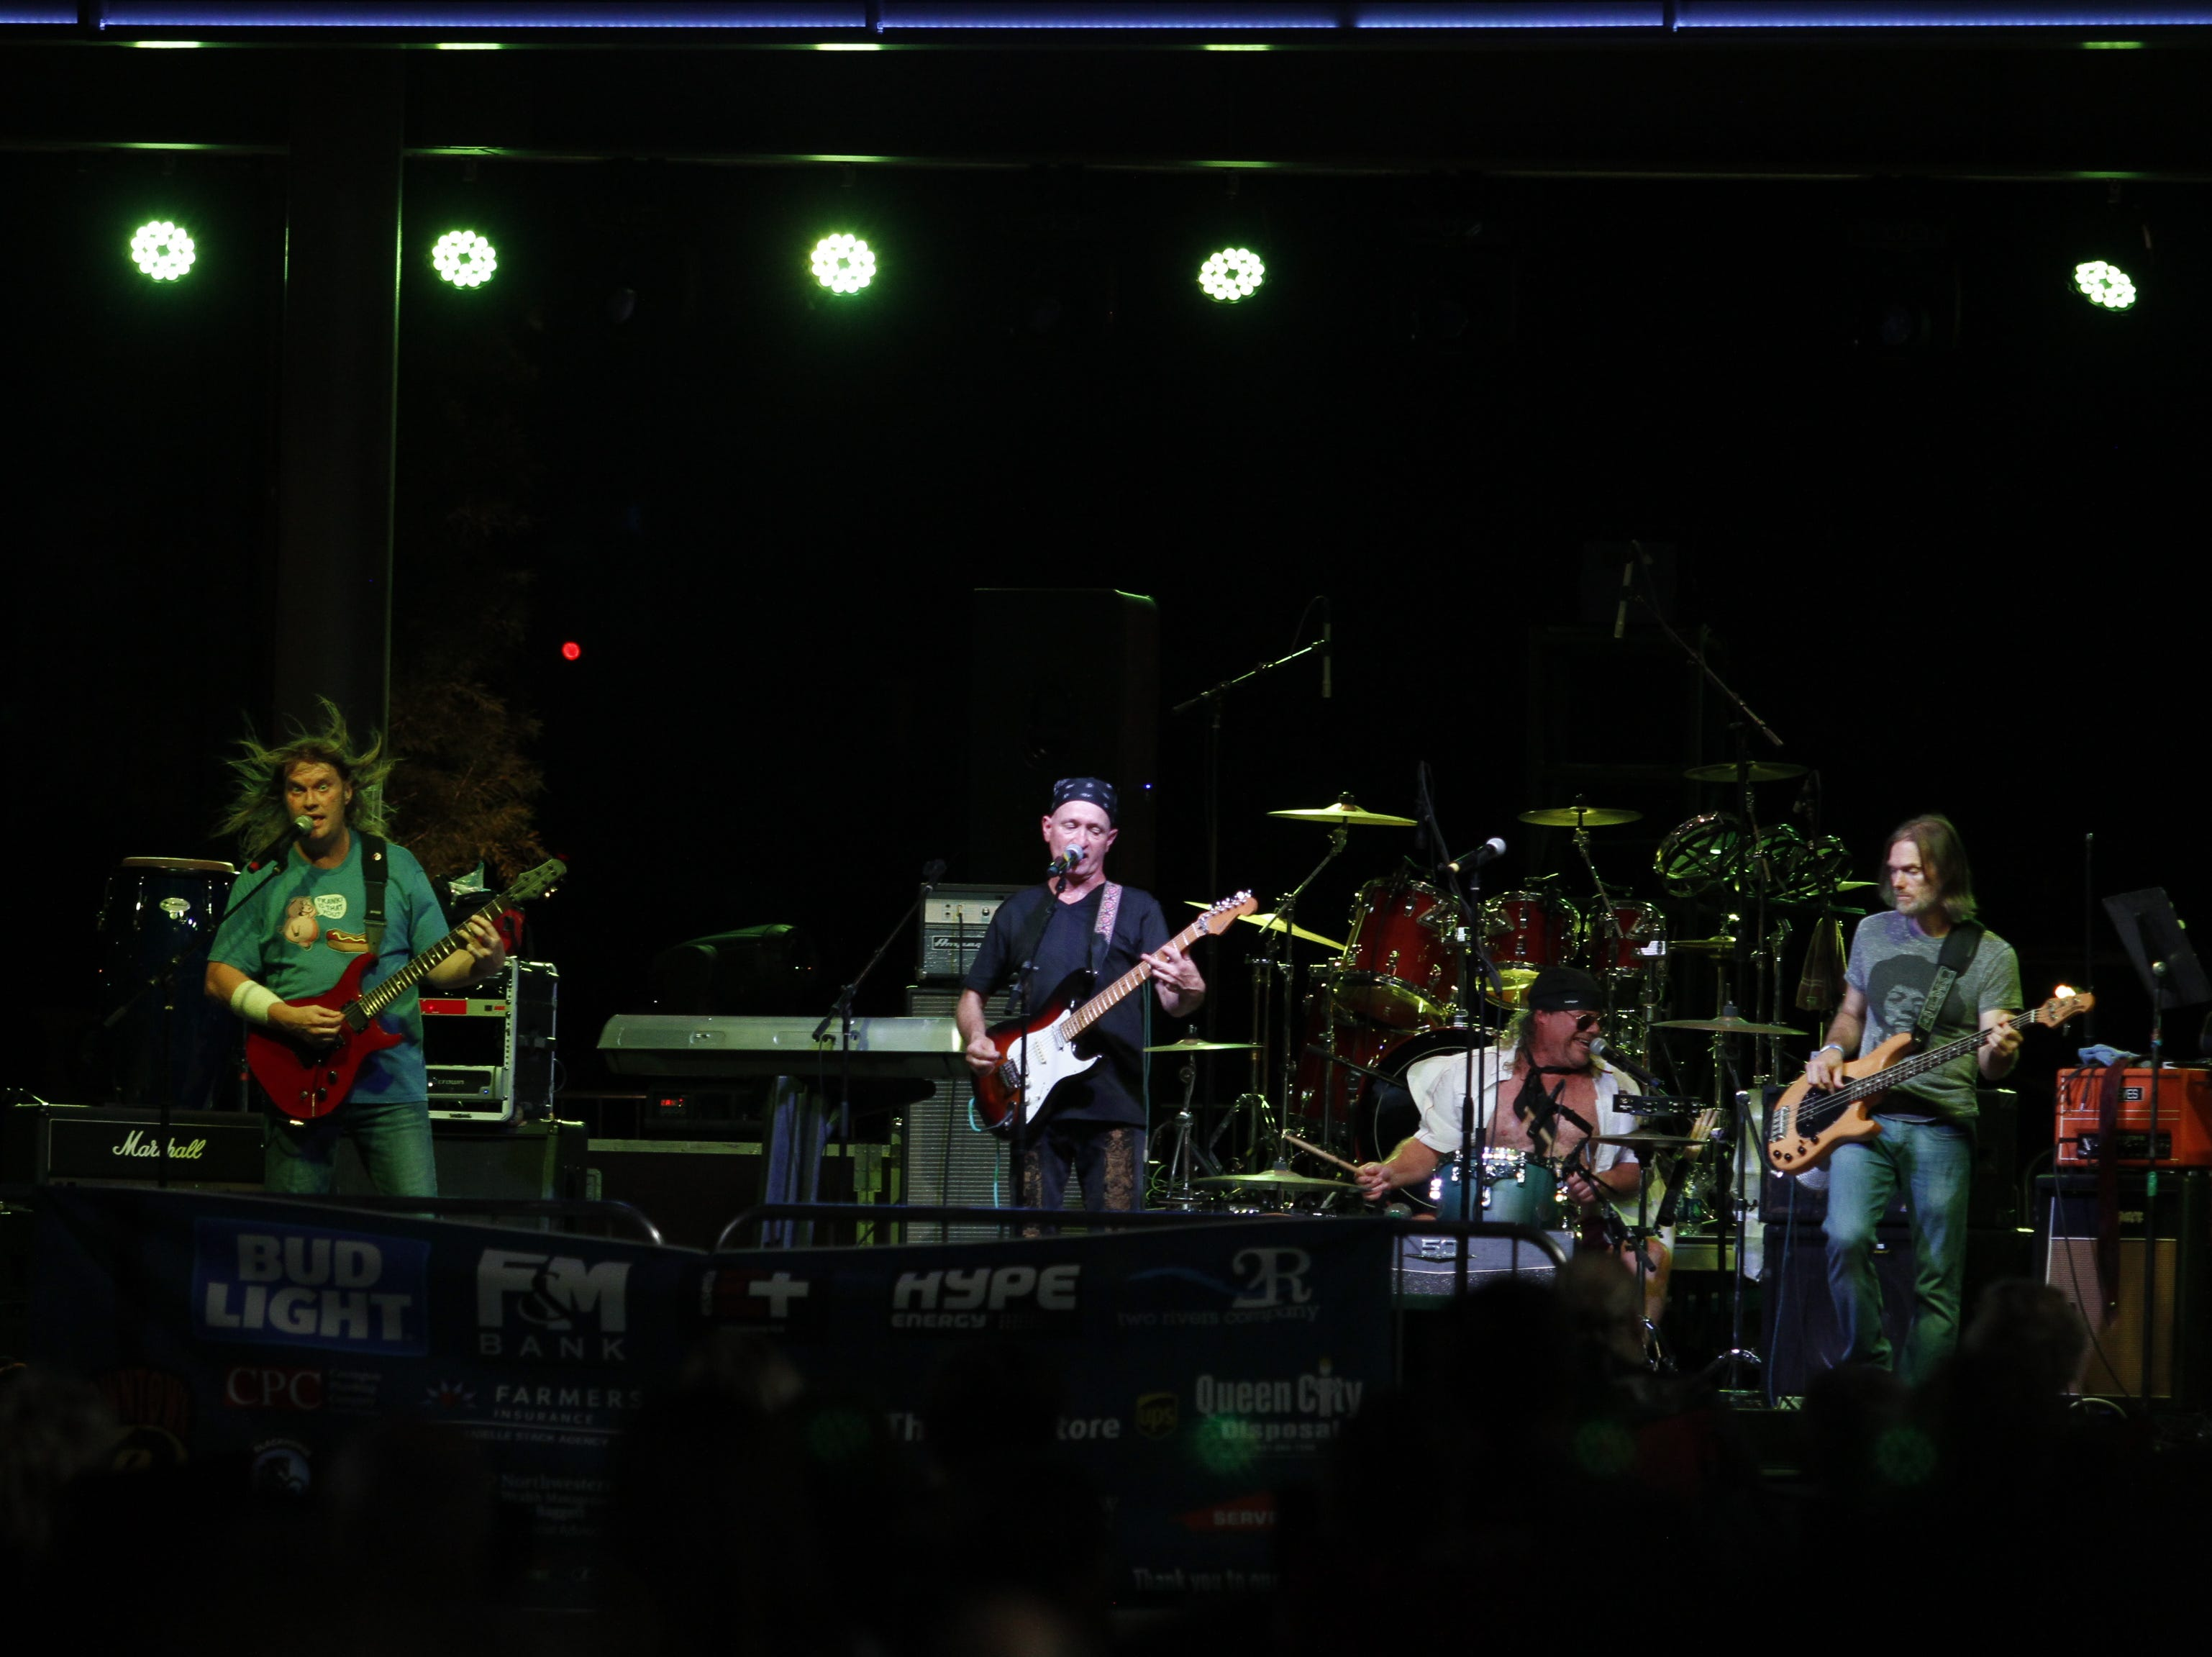 Neil Brock and the Cover Up at the Downtown at Sundown Welcome Home Veterans Concert featuring American Floyd, Friday, Sept. 14, 2018.